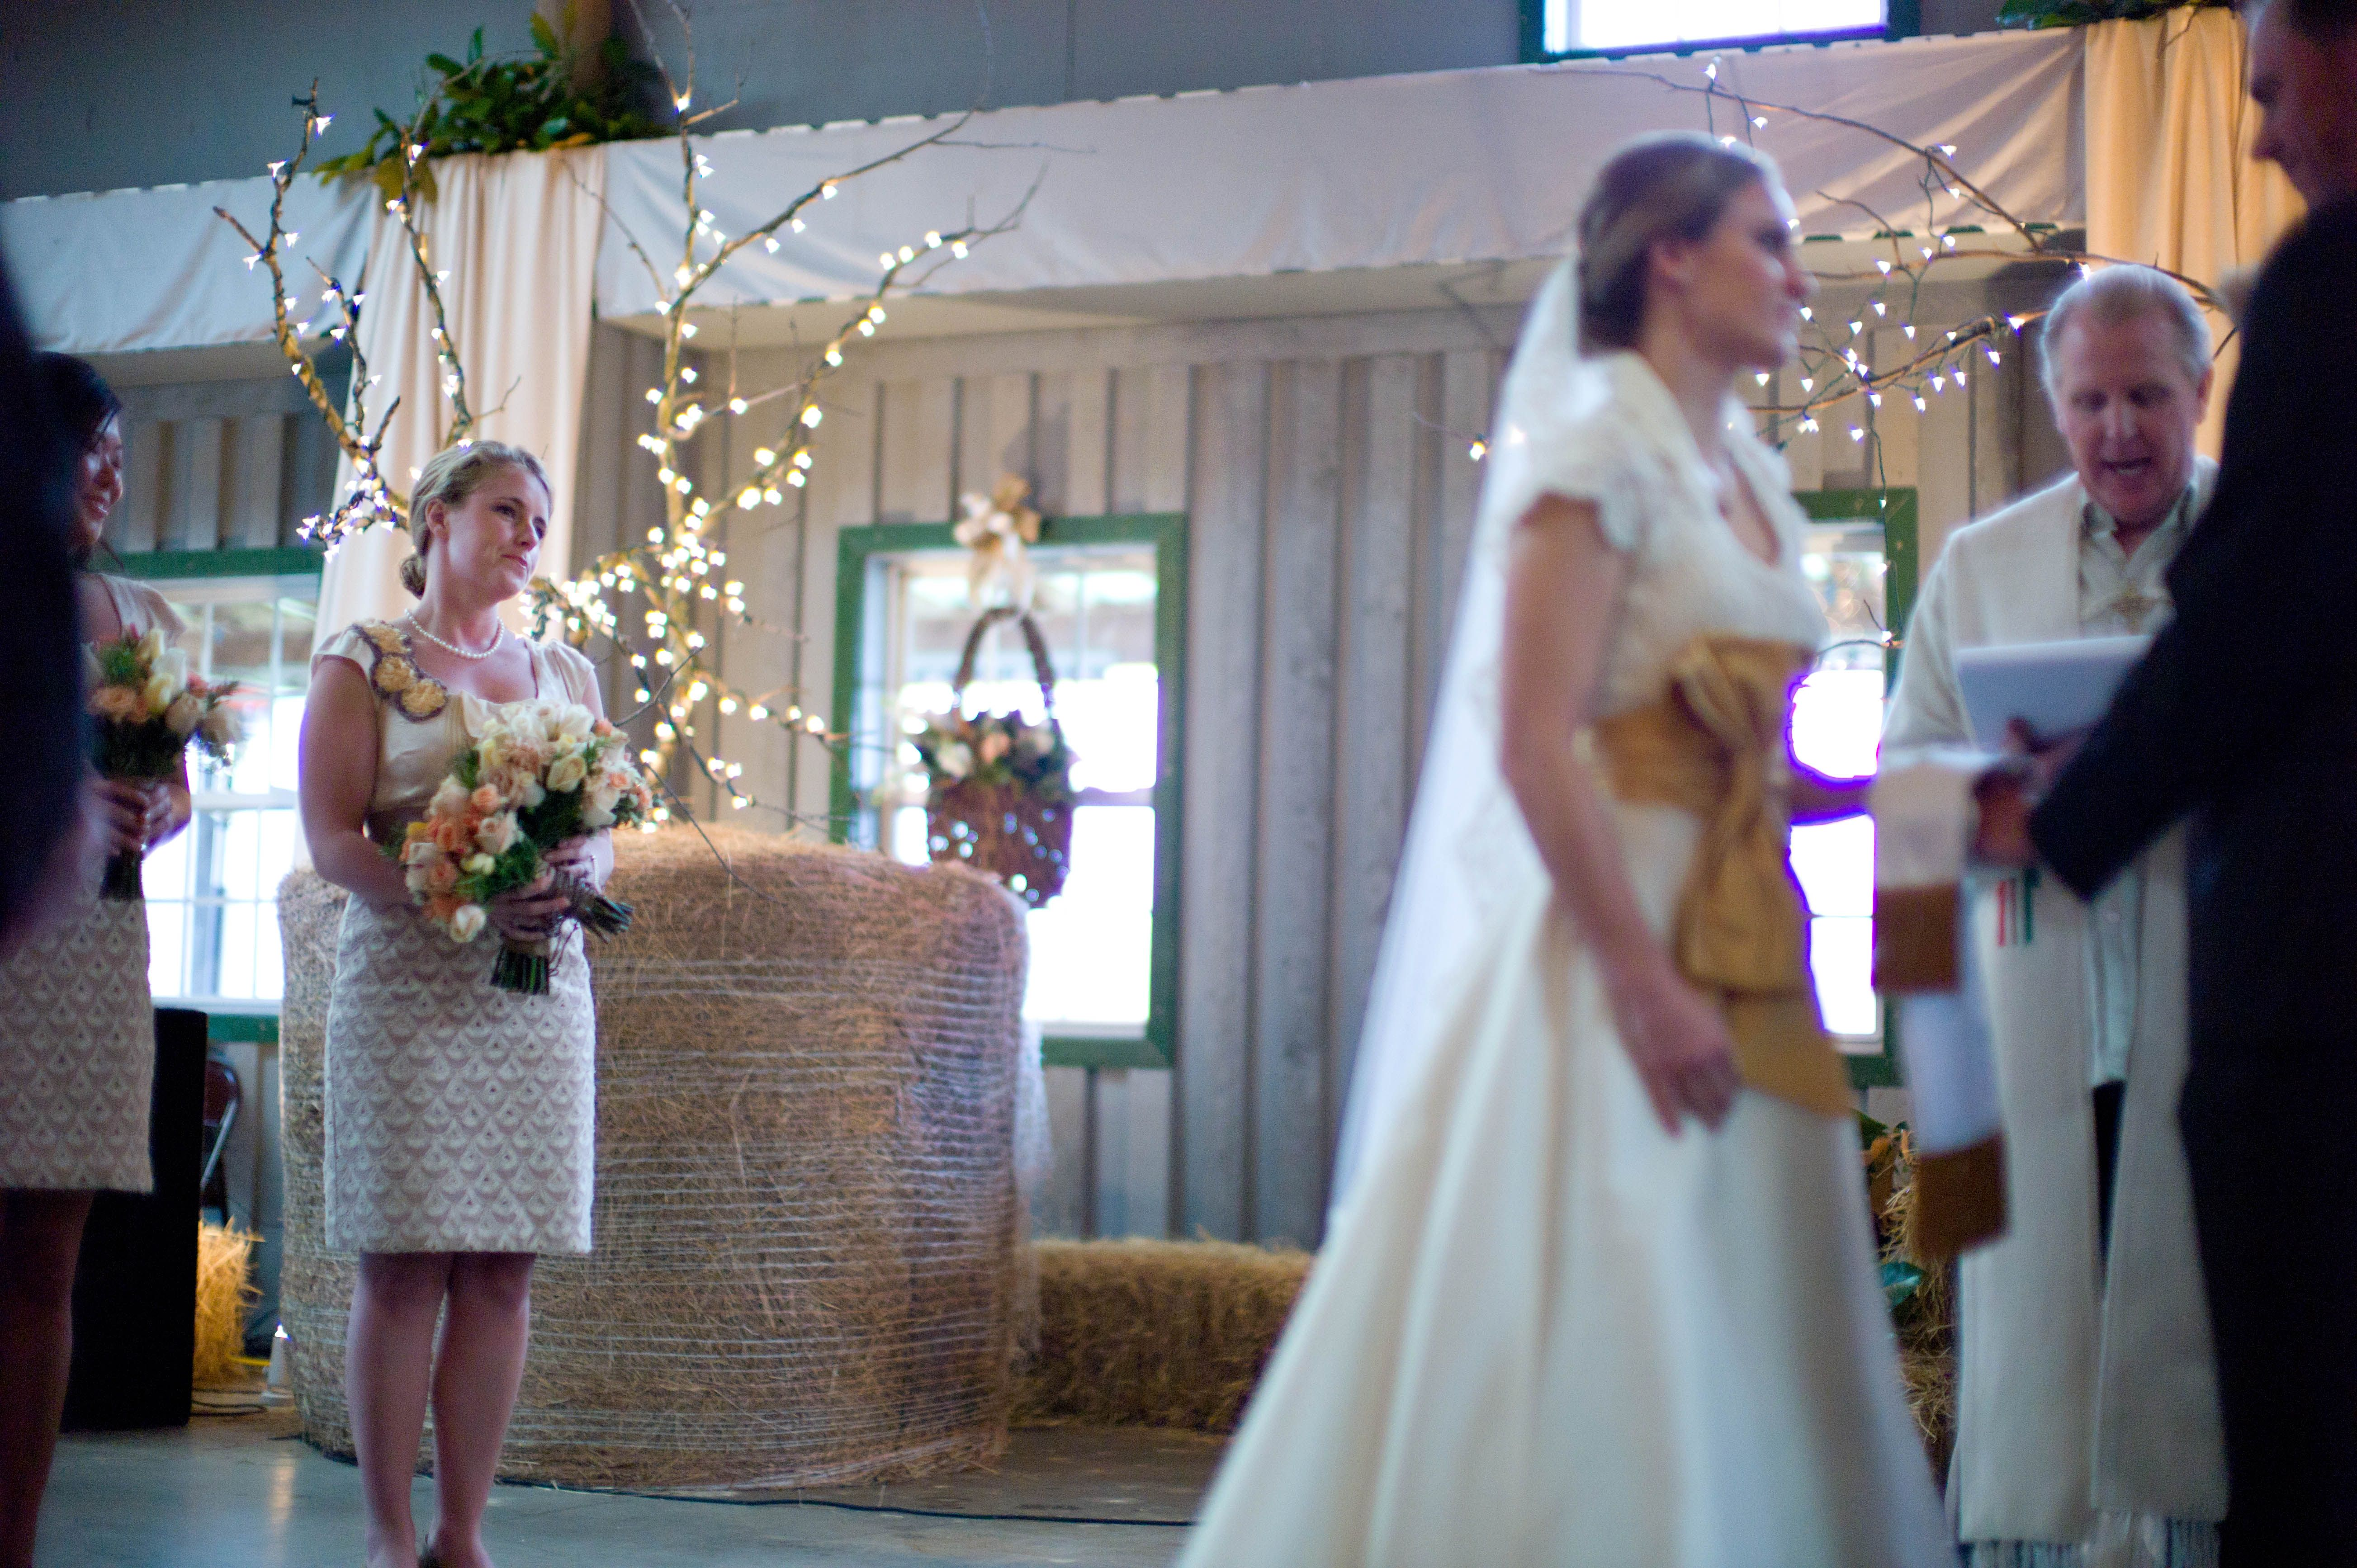 indoor ceremony   Weddings at Greenbrier Farms   Greenbrier